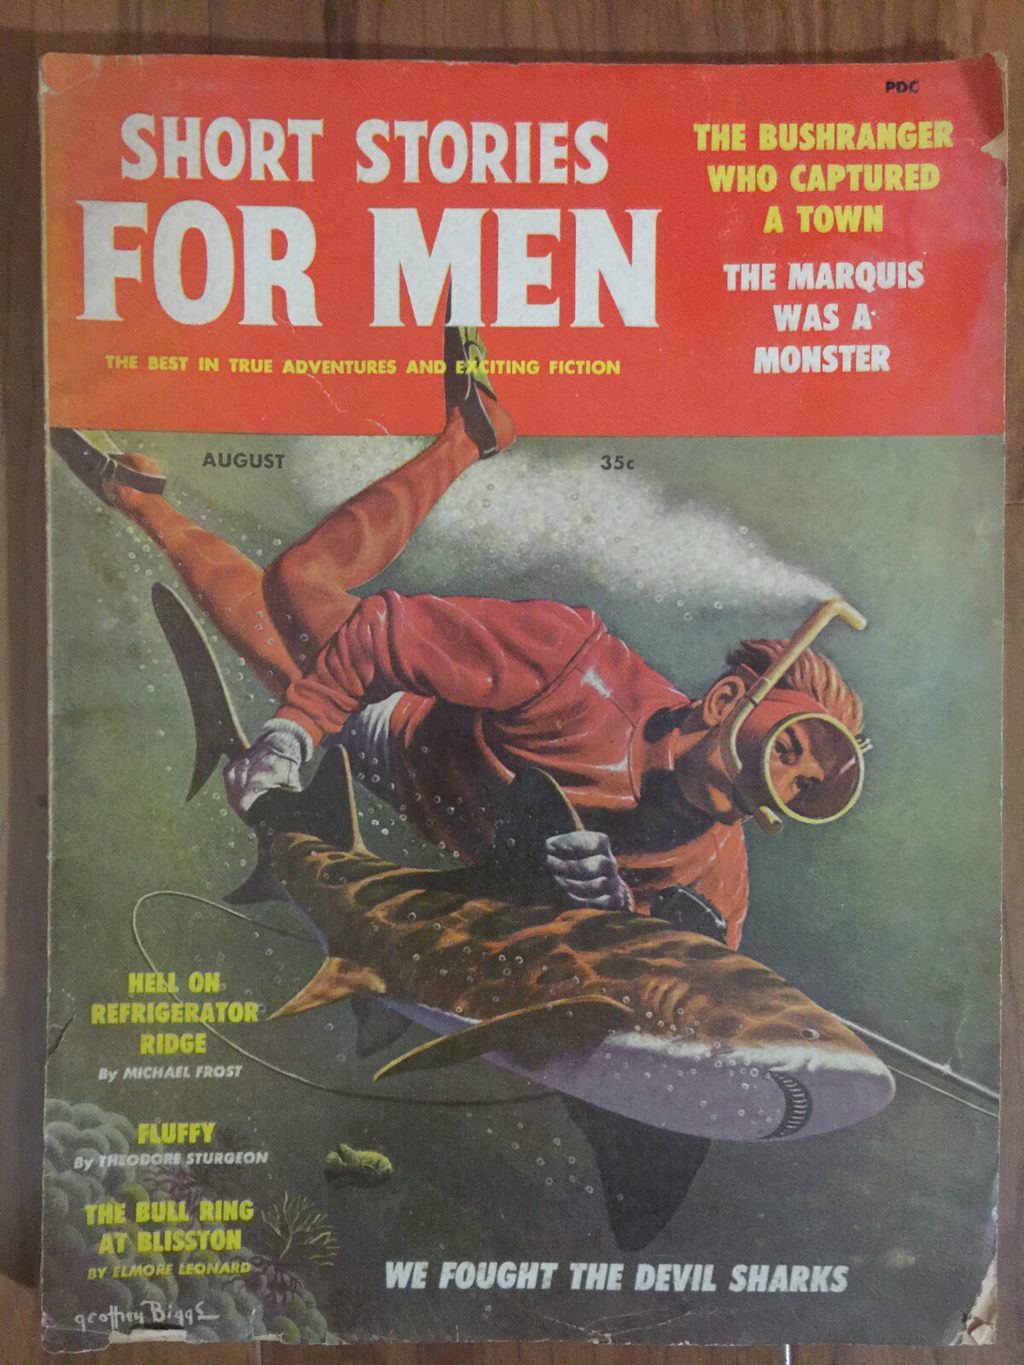 1959 Feb last issue (bedsheet-size) issue of Short Stories mix of reprints and originals, features stories by Elmore Leonard and Theodore Sturgeon